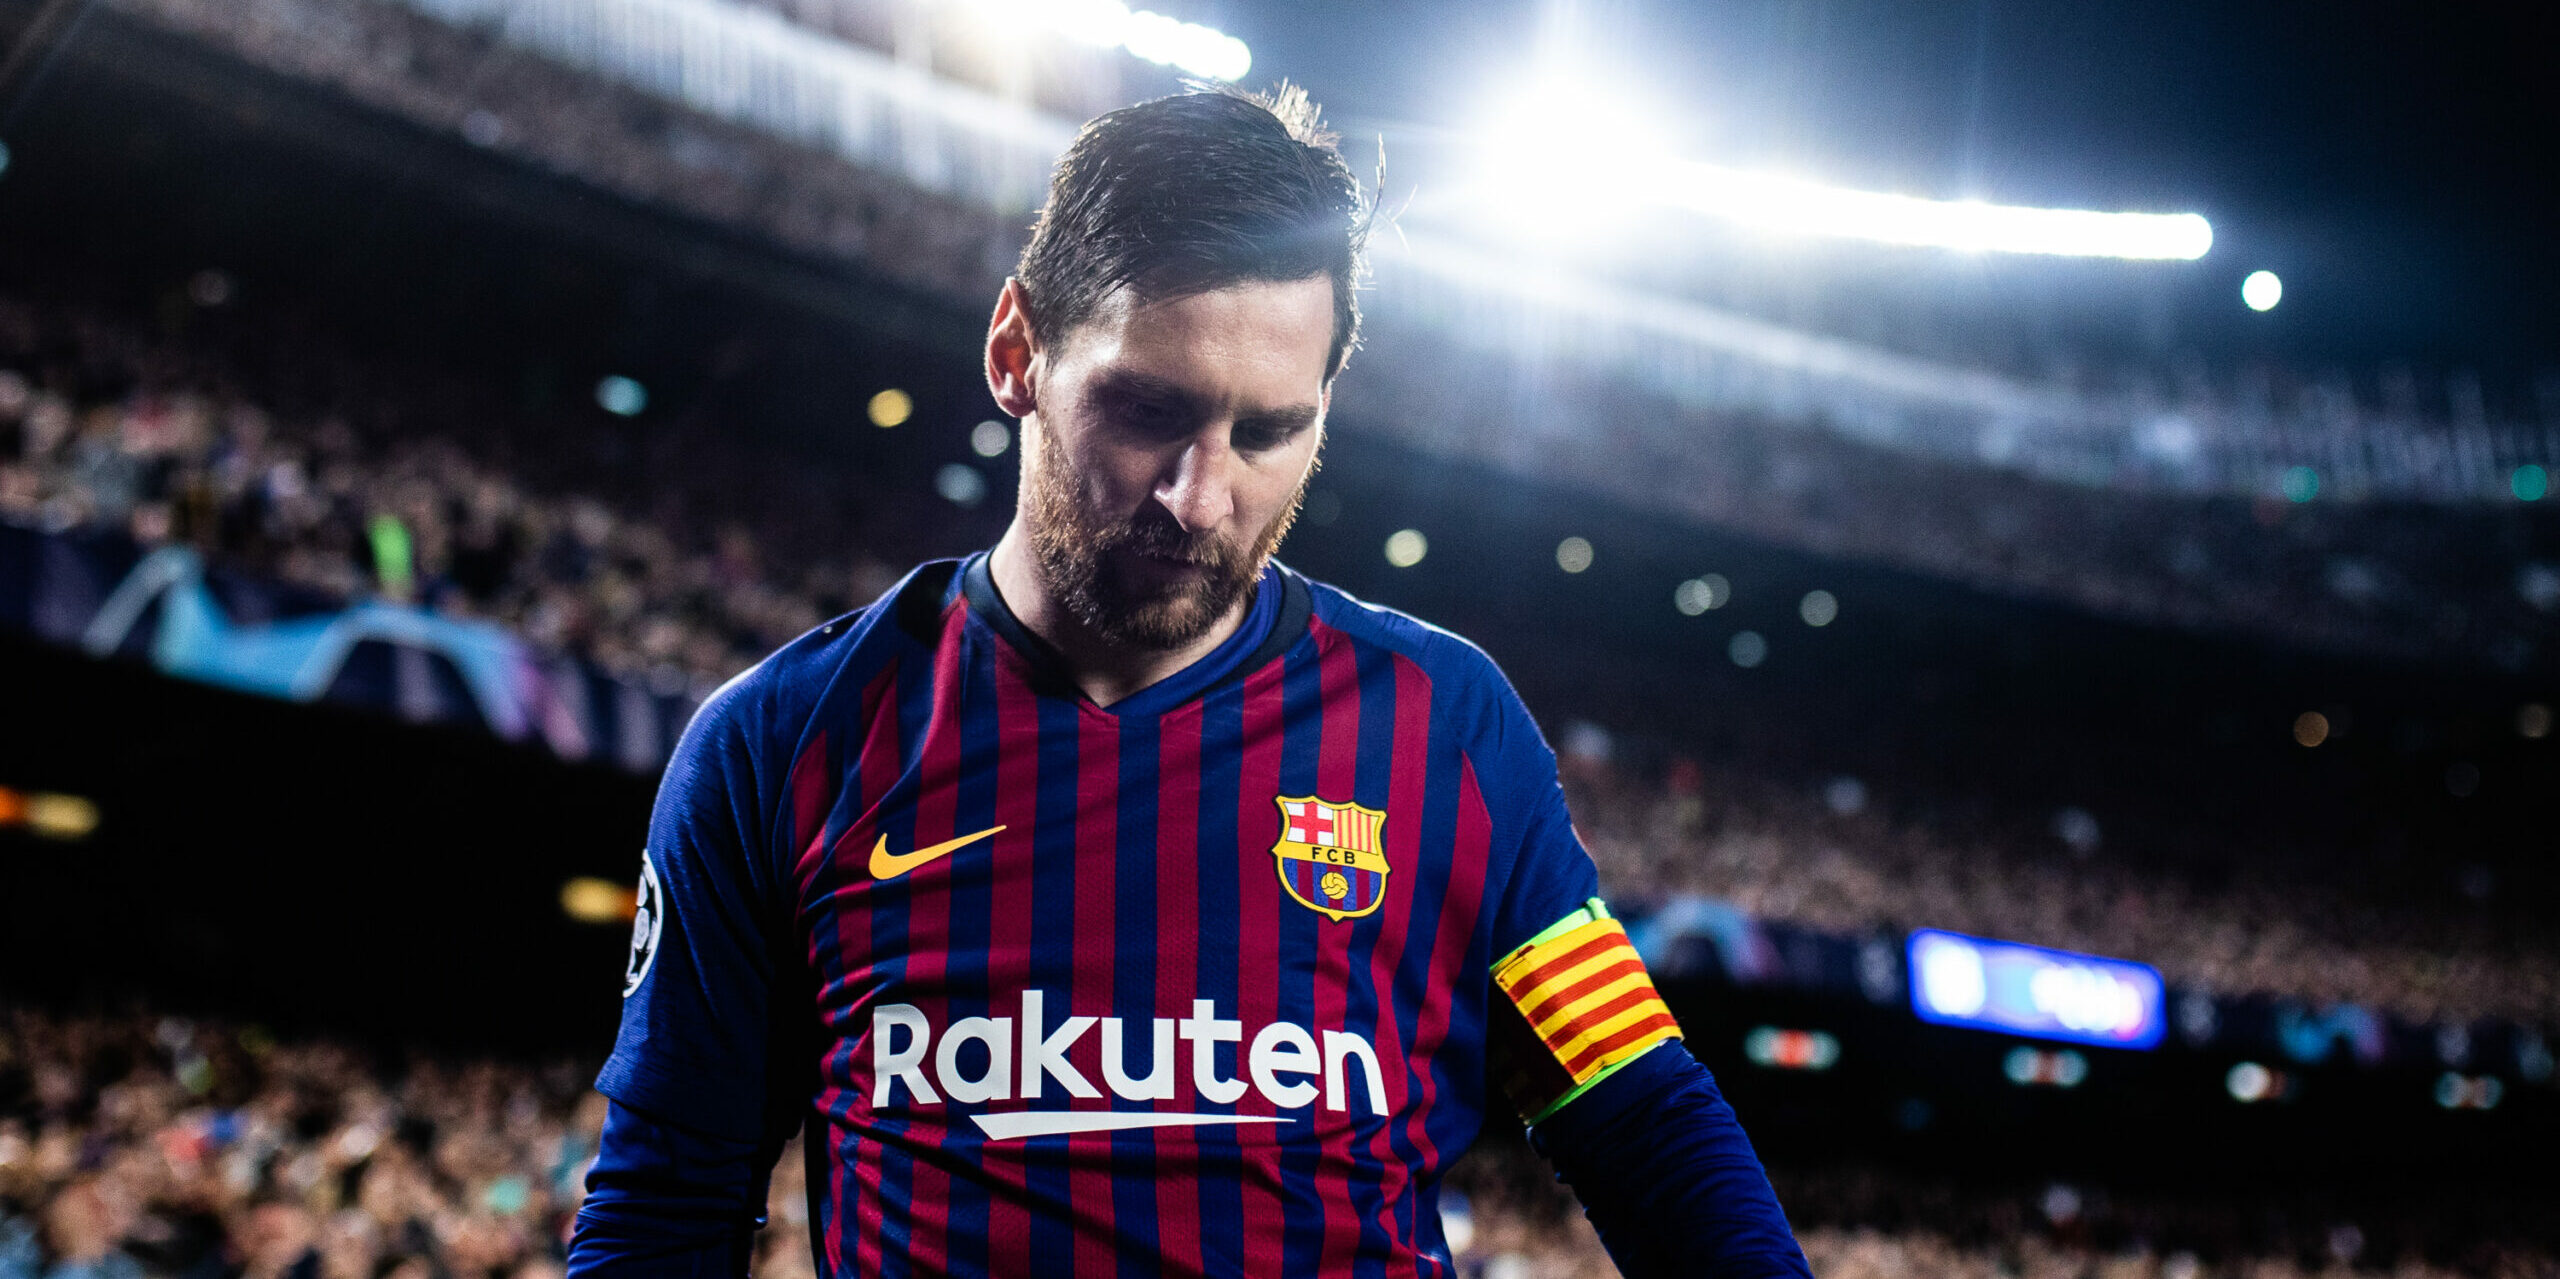 Leo Messi, capità del Barça | Europa Press